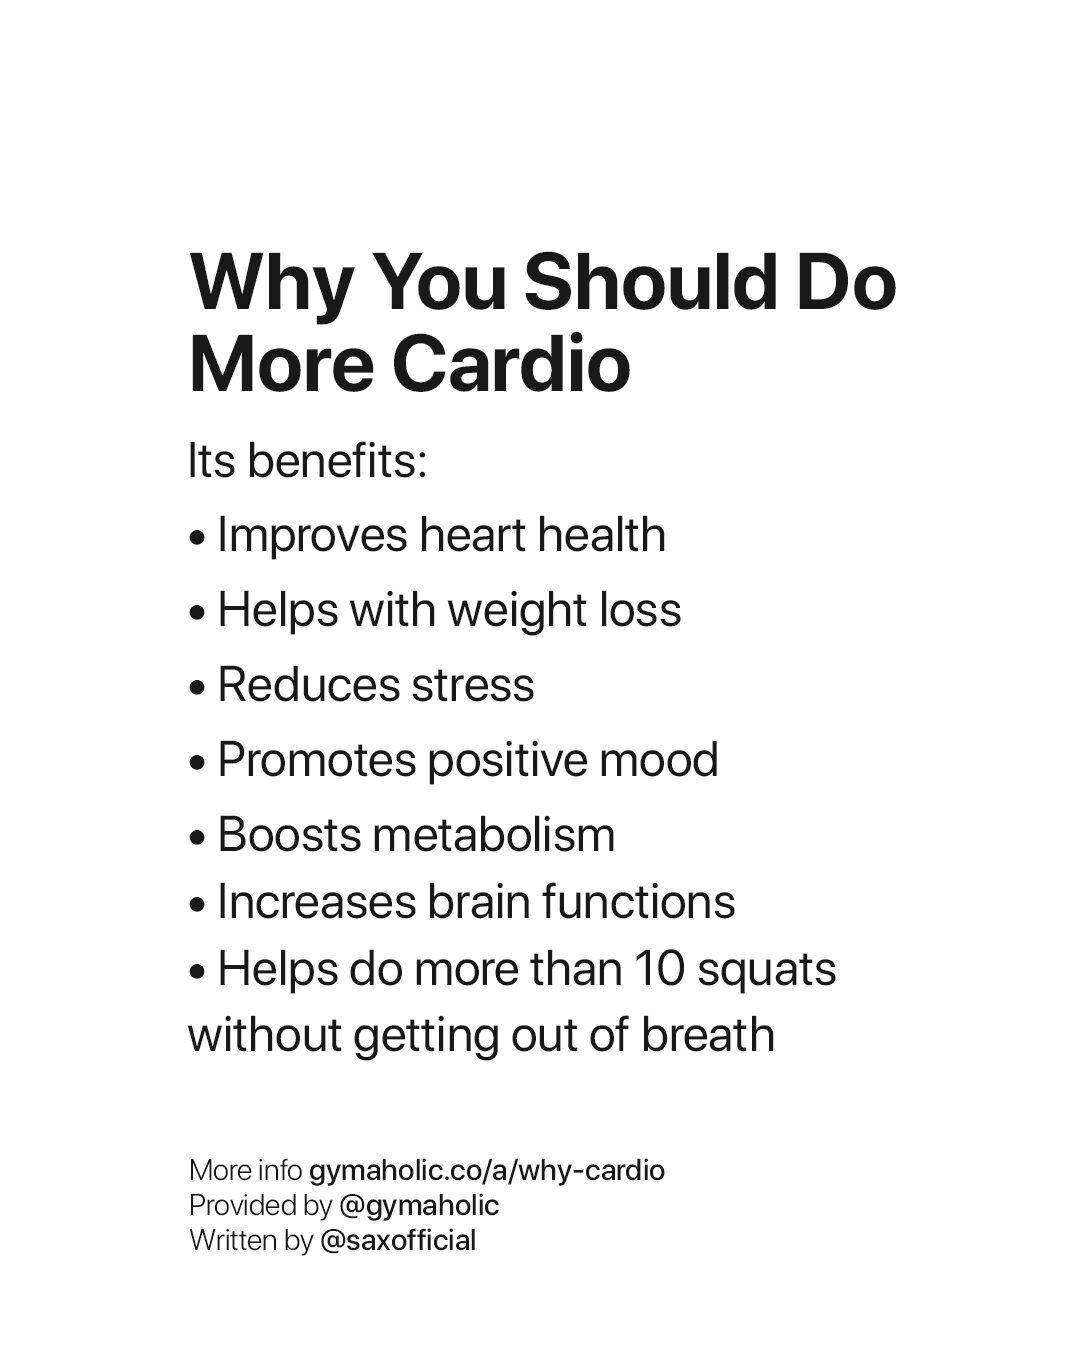 Why you should do more cardio